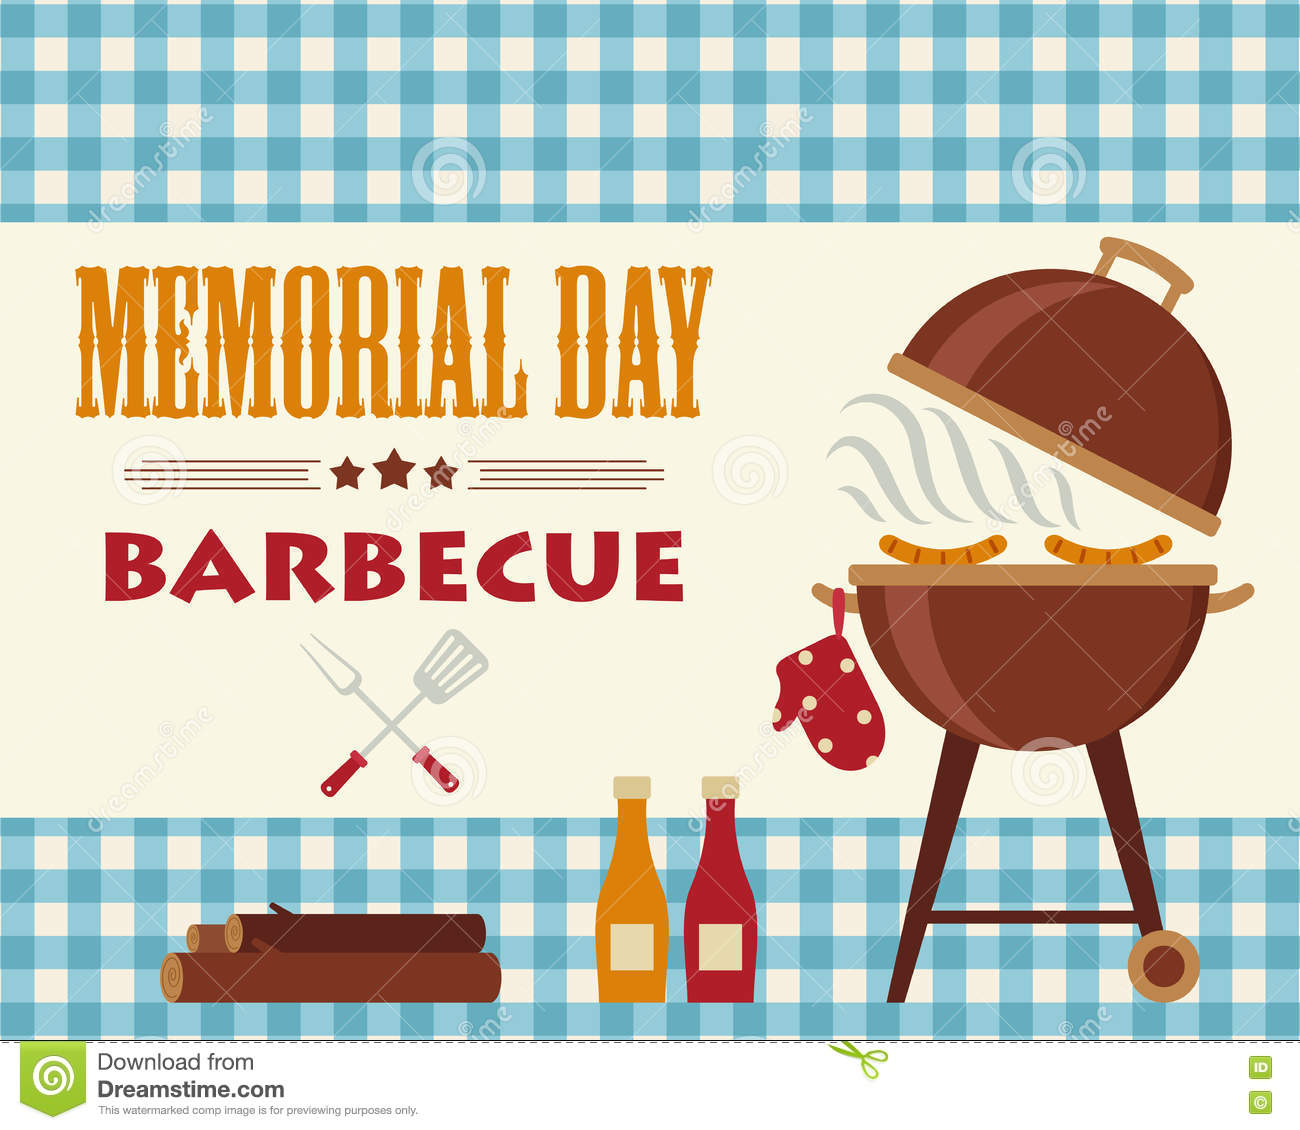 Memorial Day -Grill